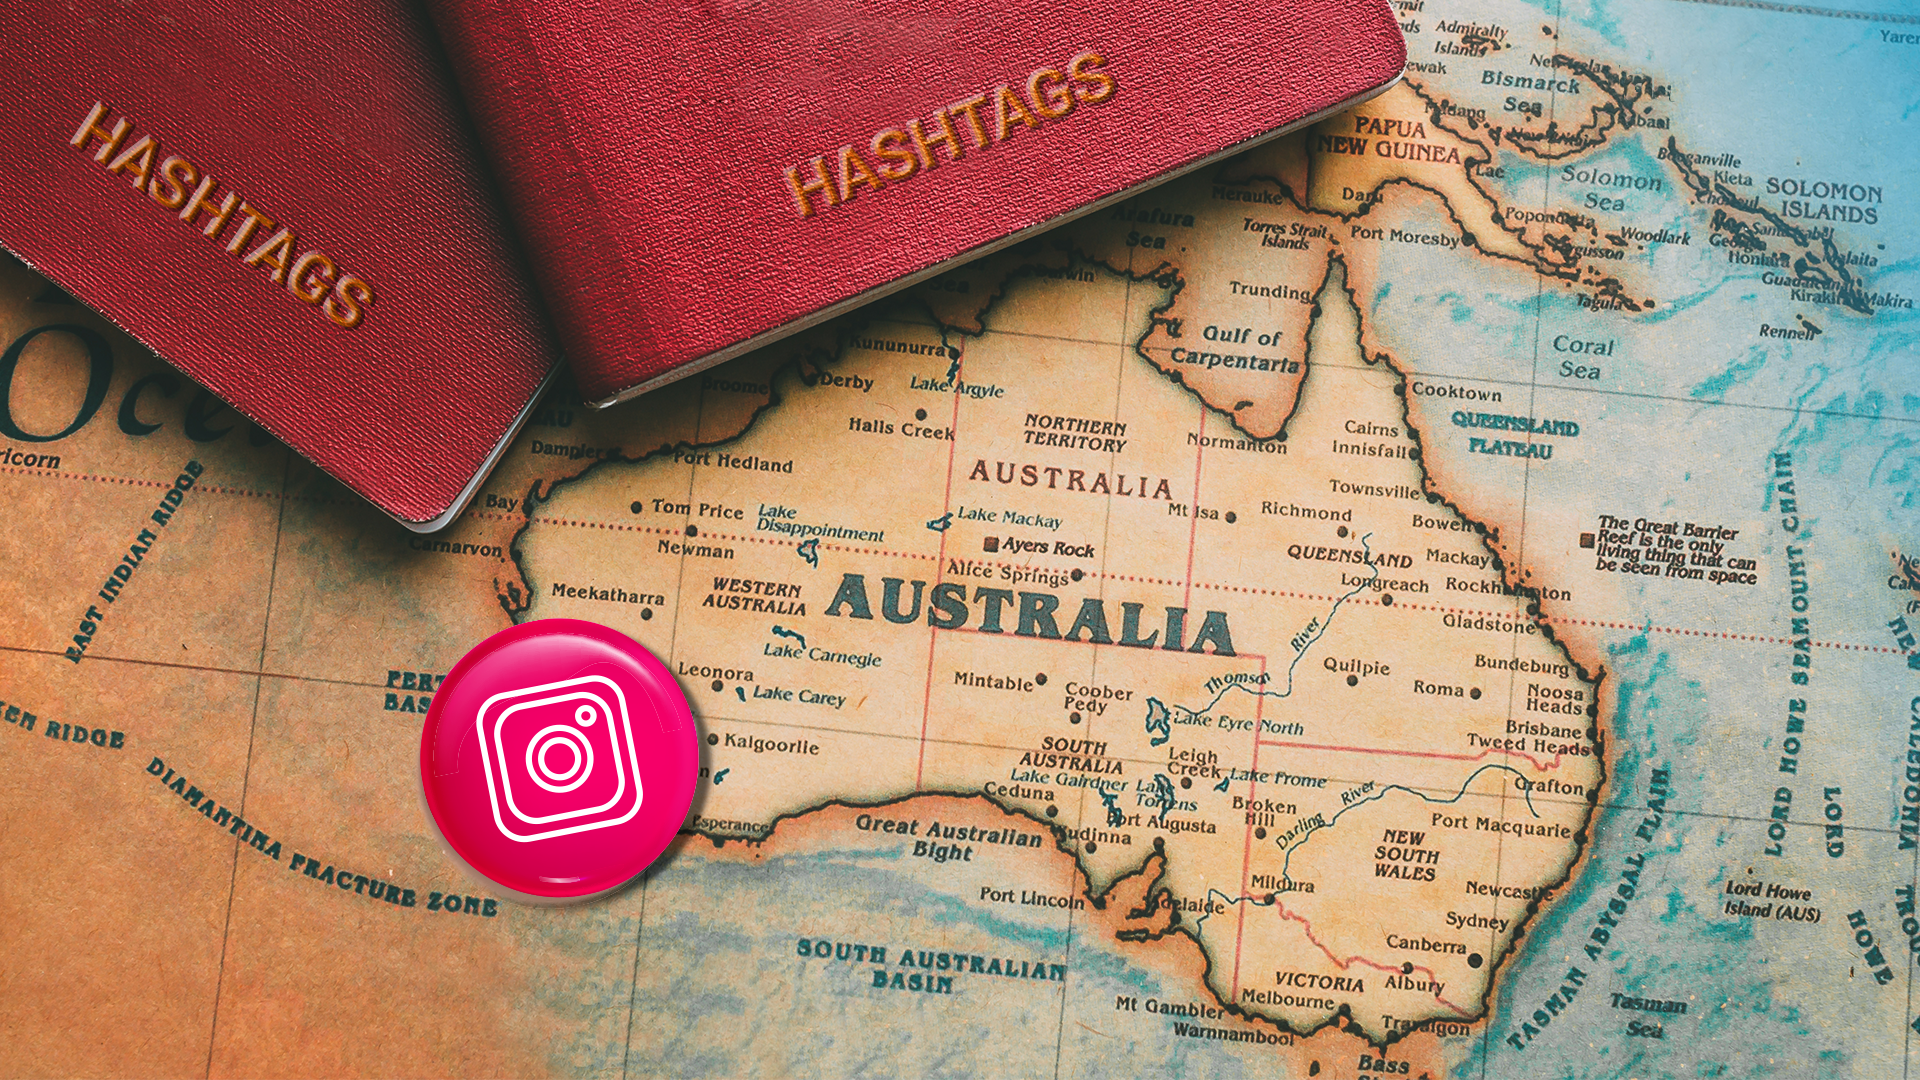 Most popular Instagram hashtags Australia